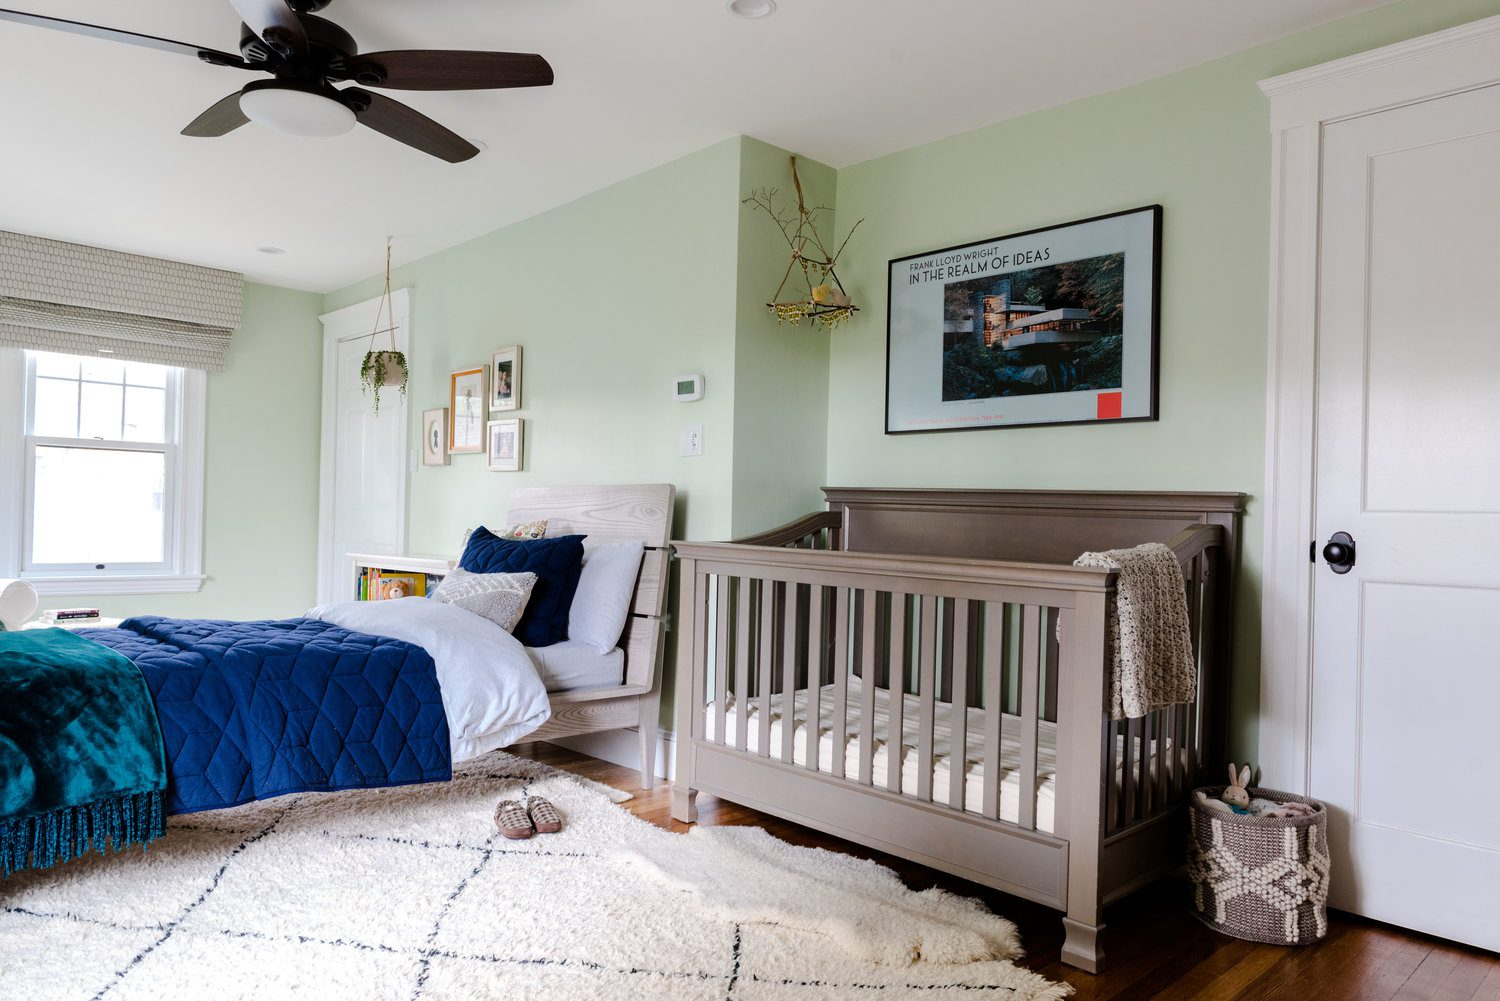 finished brothers bedroom with mint green walls behind dark wood crib